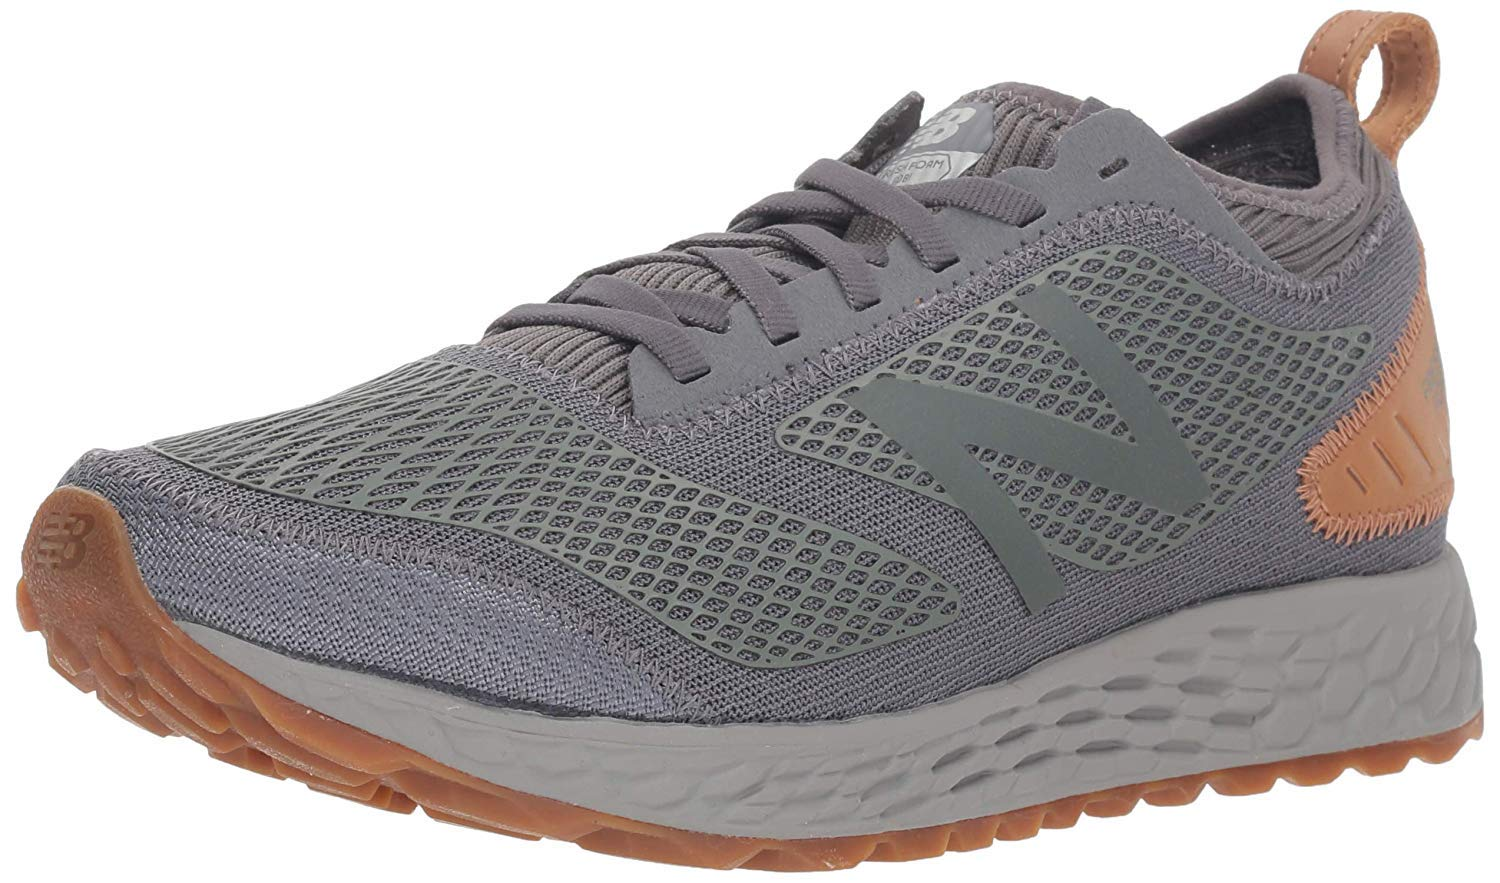 Details about New Balance Women's Gobi V3 Fresh Foam Trail Runni Choose SZcolor